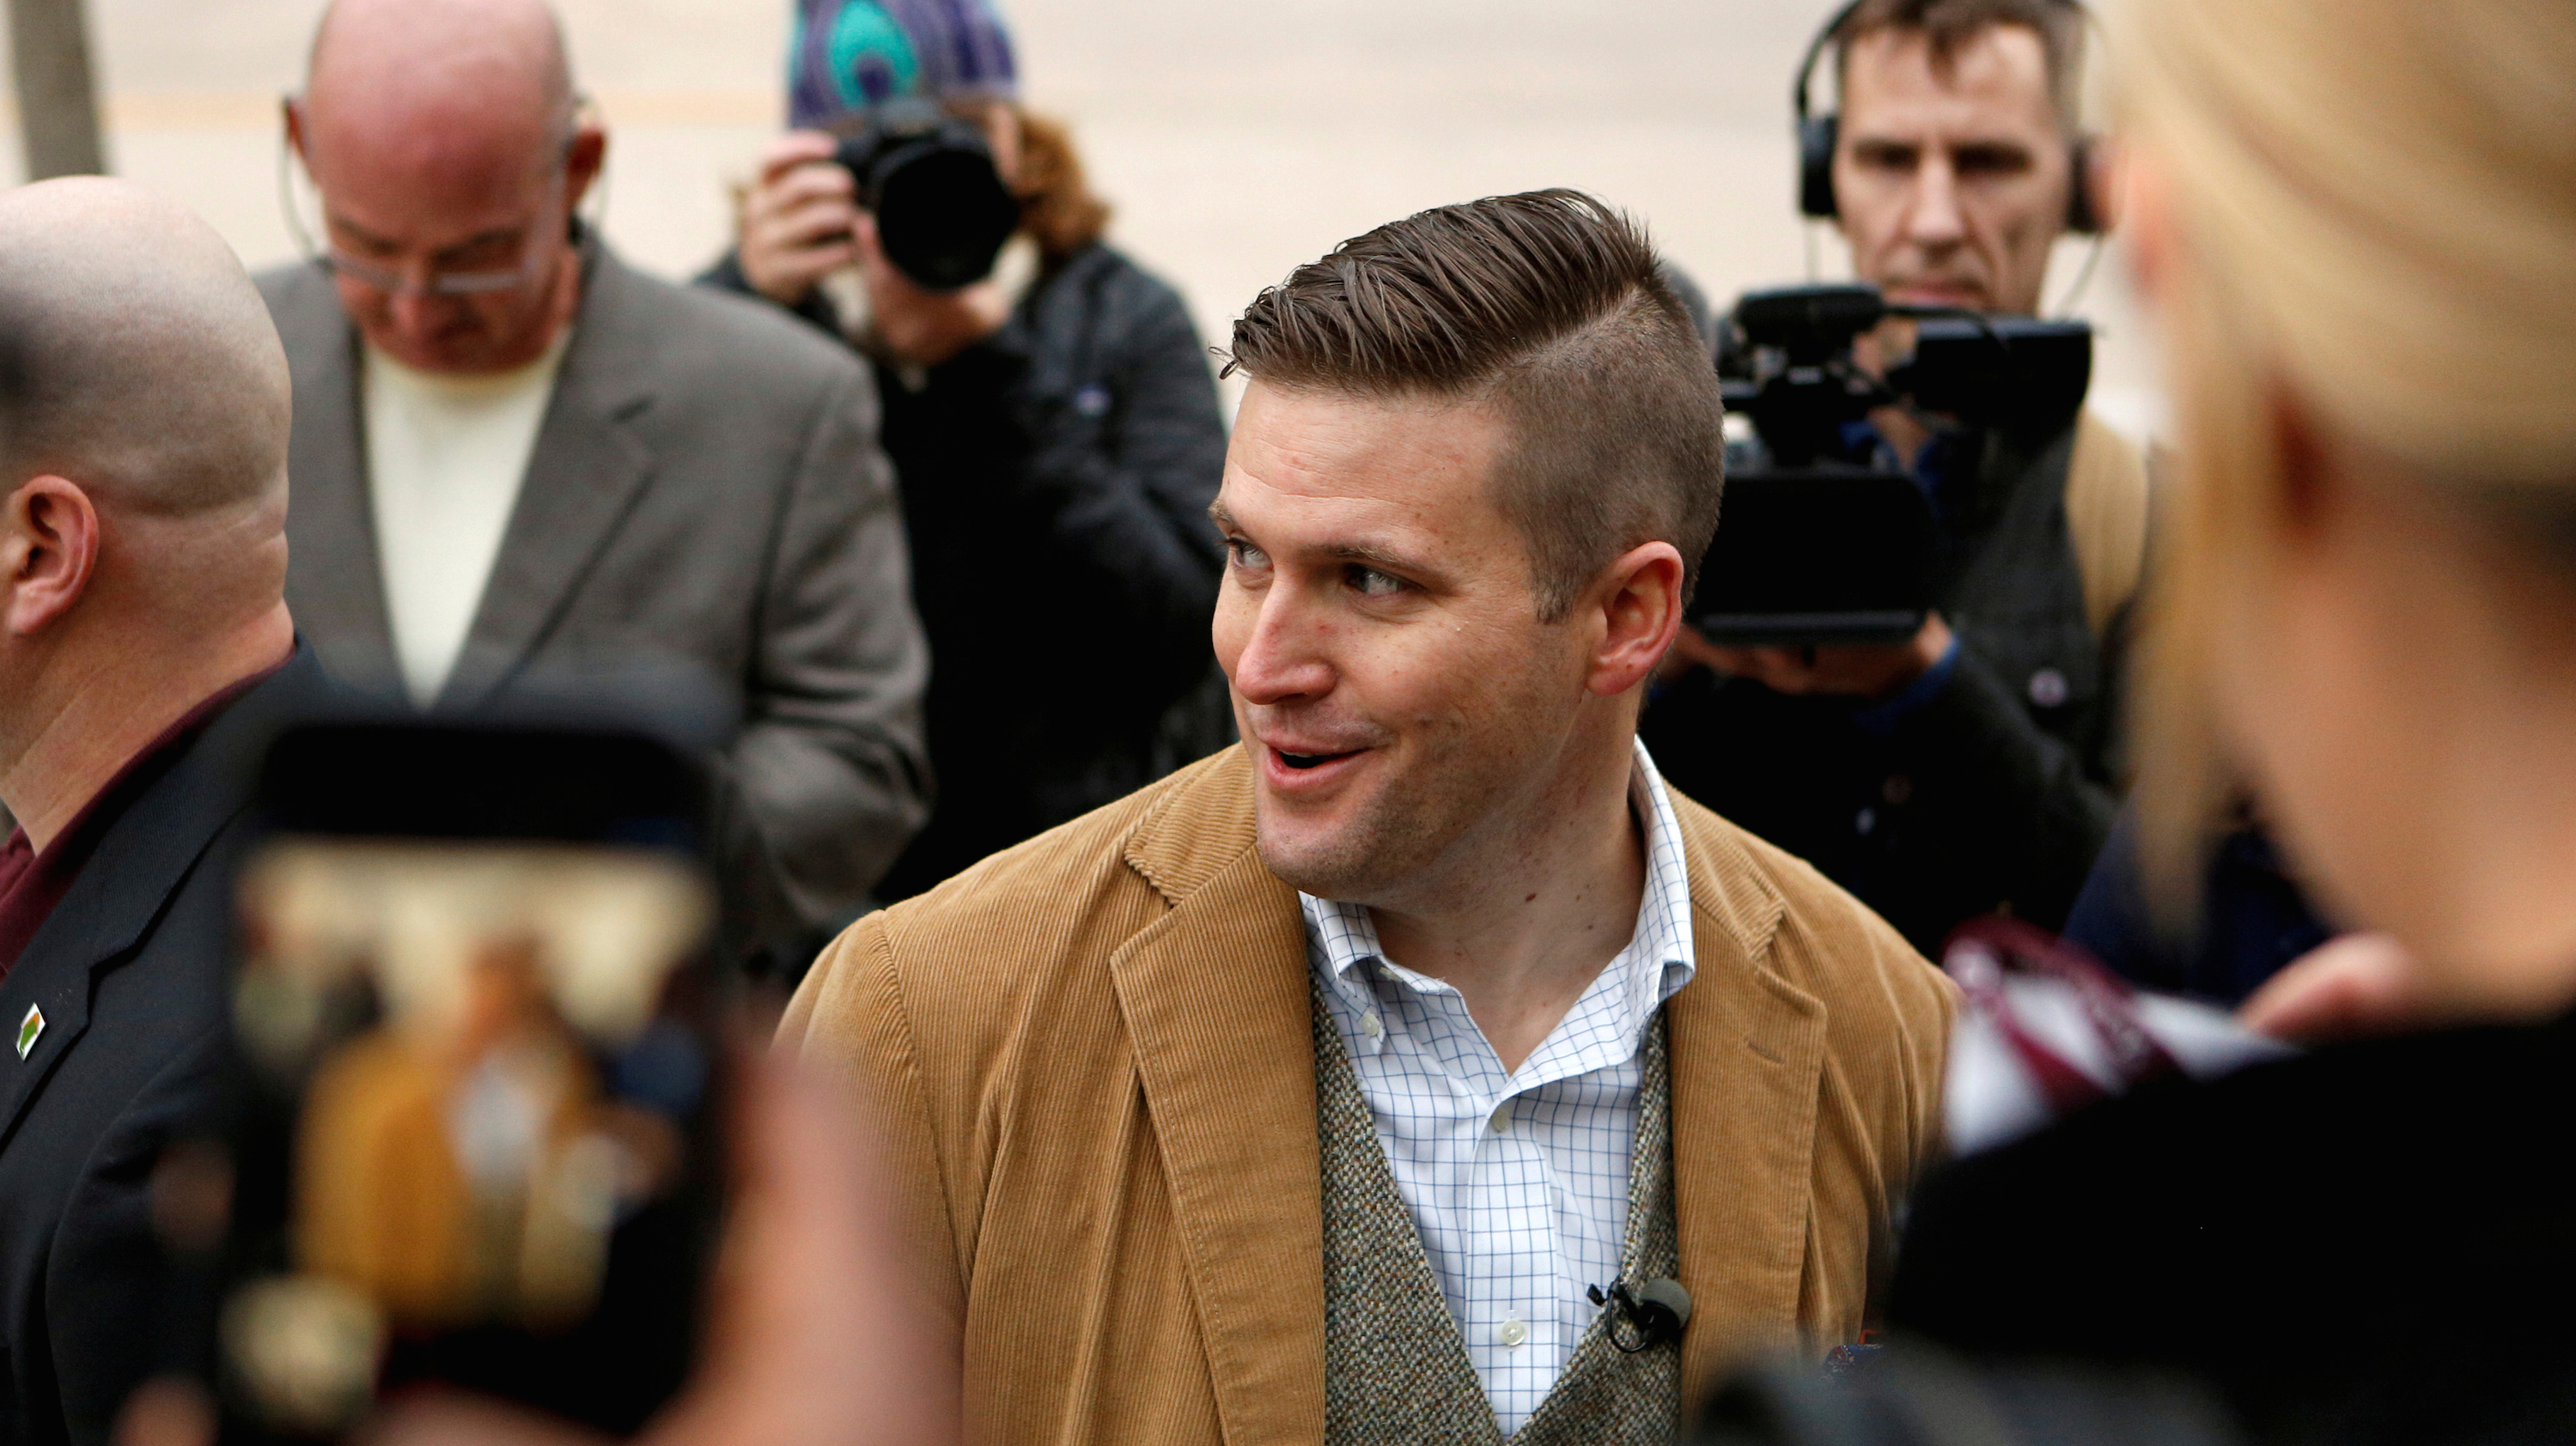 FILE PHOTO: Richard Spencer of the National Policy Institute arrives on campus to speak at an event not sanctioned by the school, at Texas A&M University in College Station, Texas,